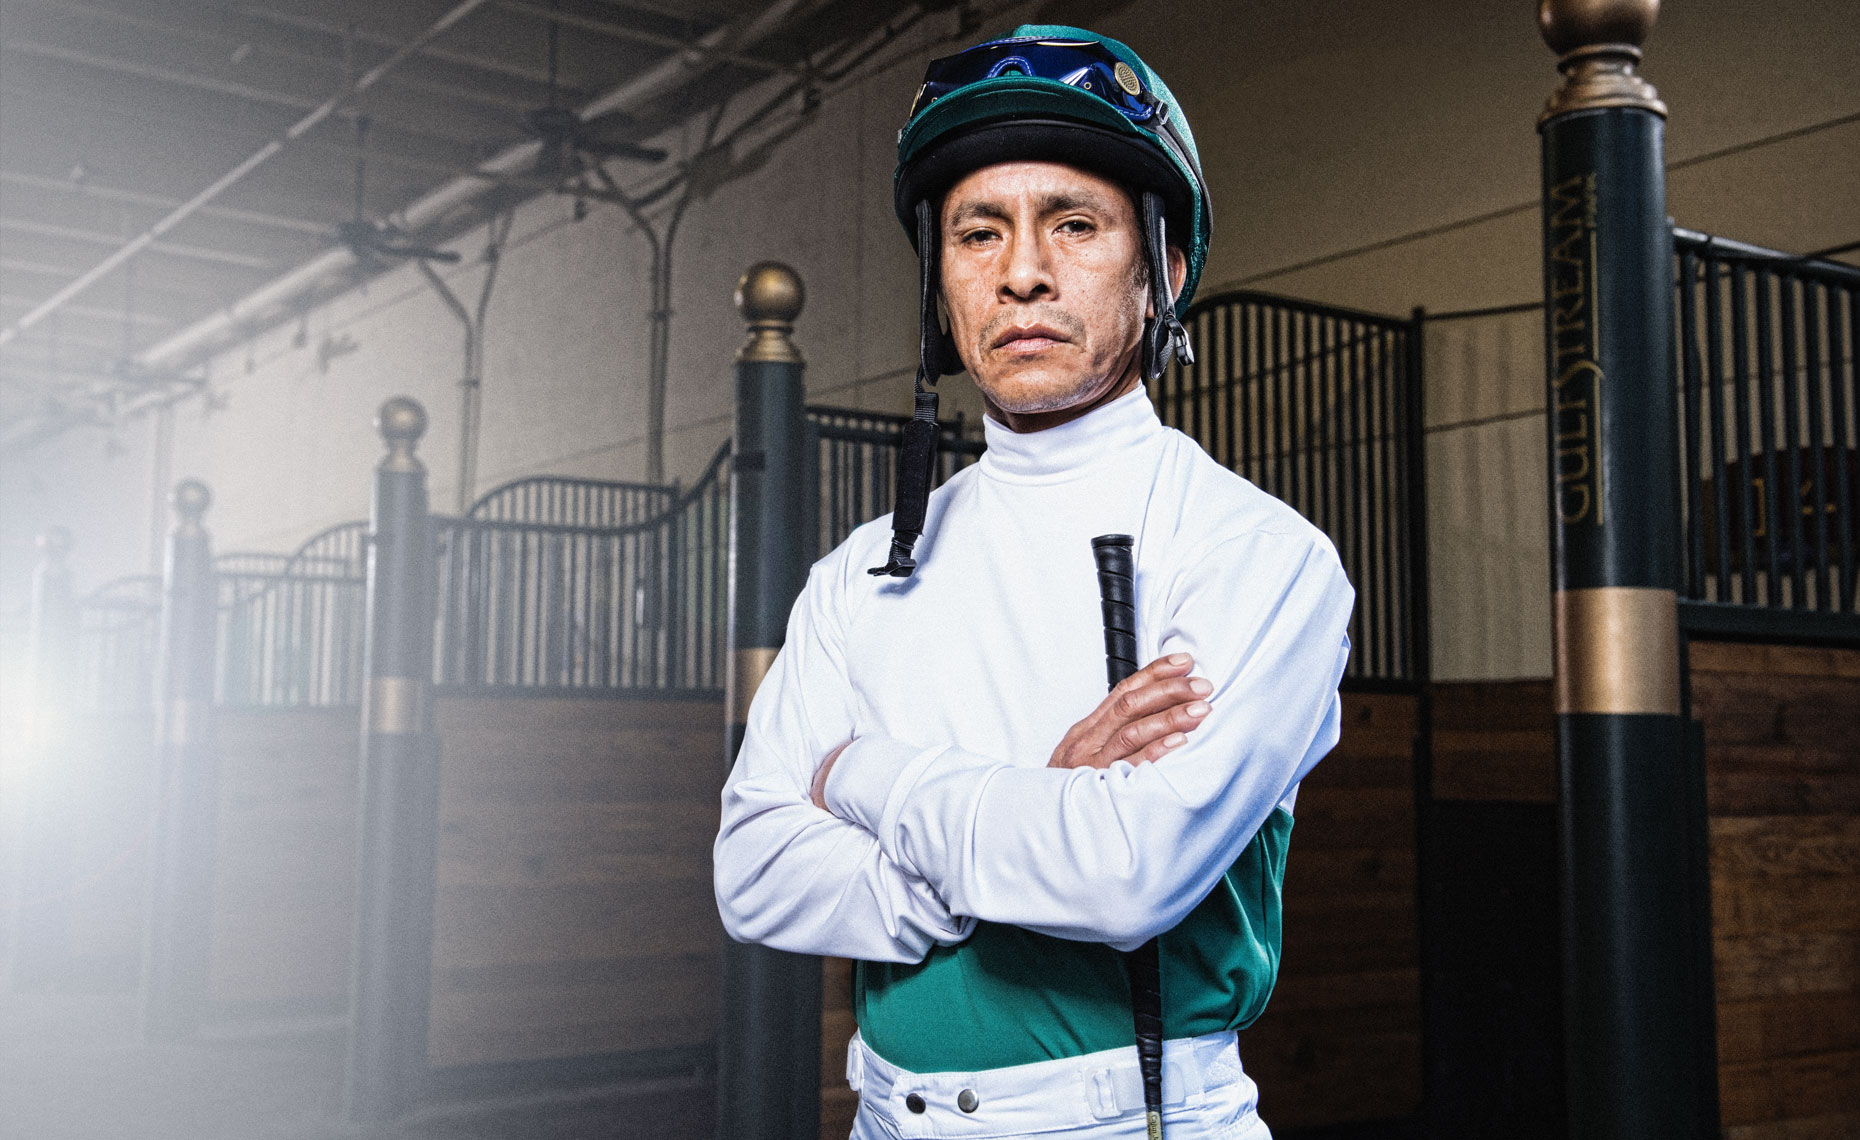 Portrait of jockey, Edgar Prado by Scott Redinger-Libolt / redphoto